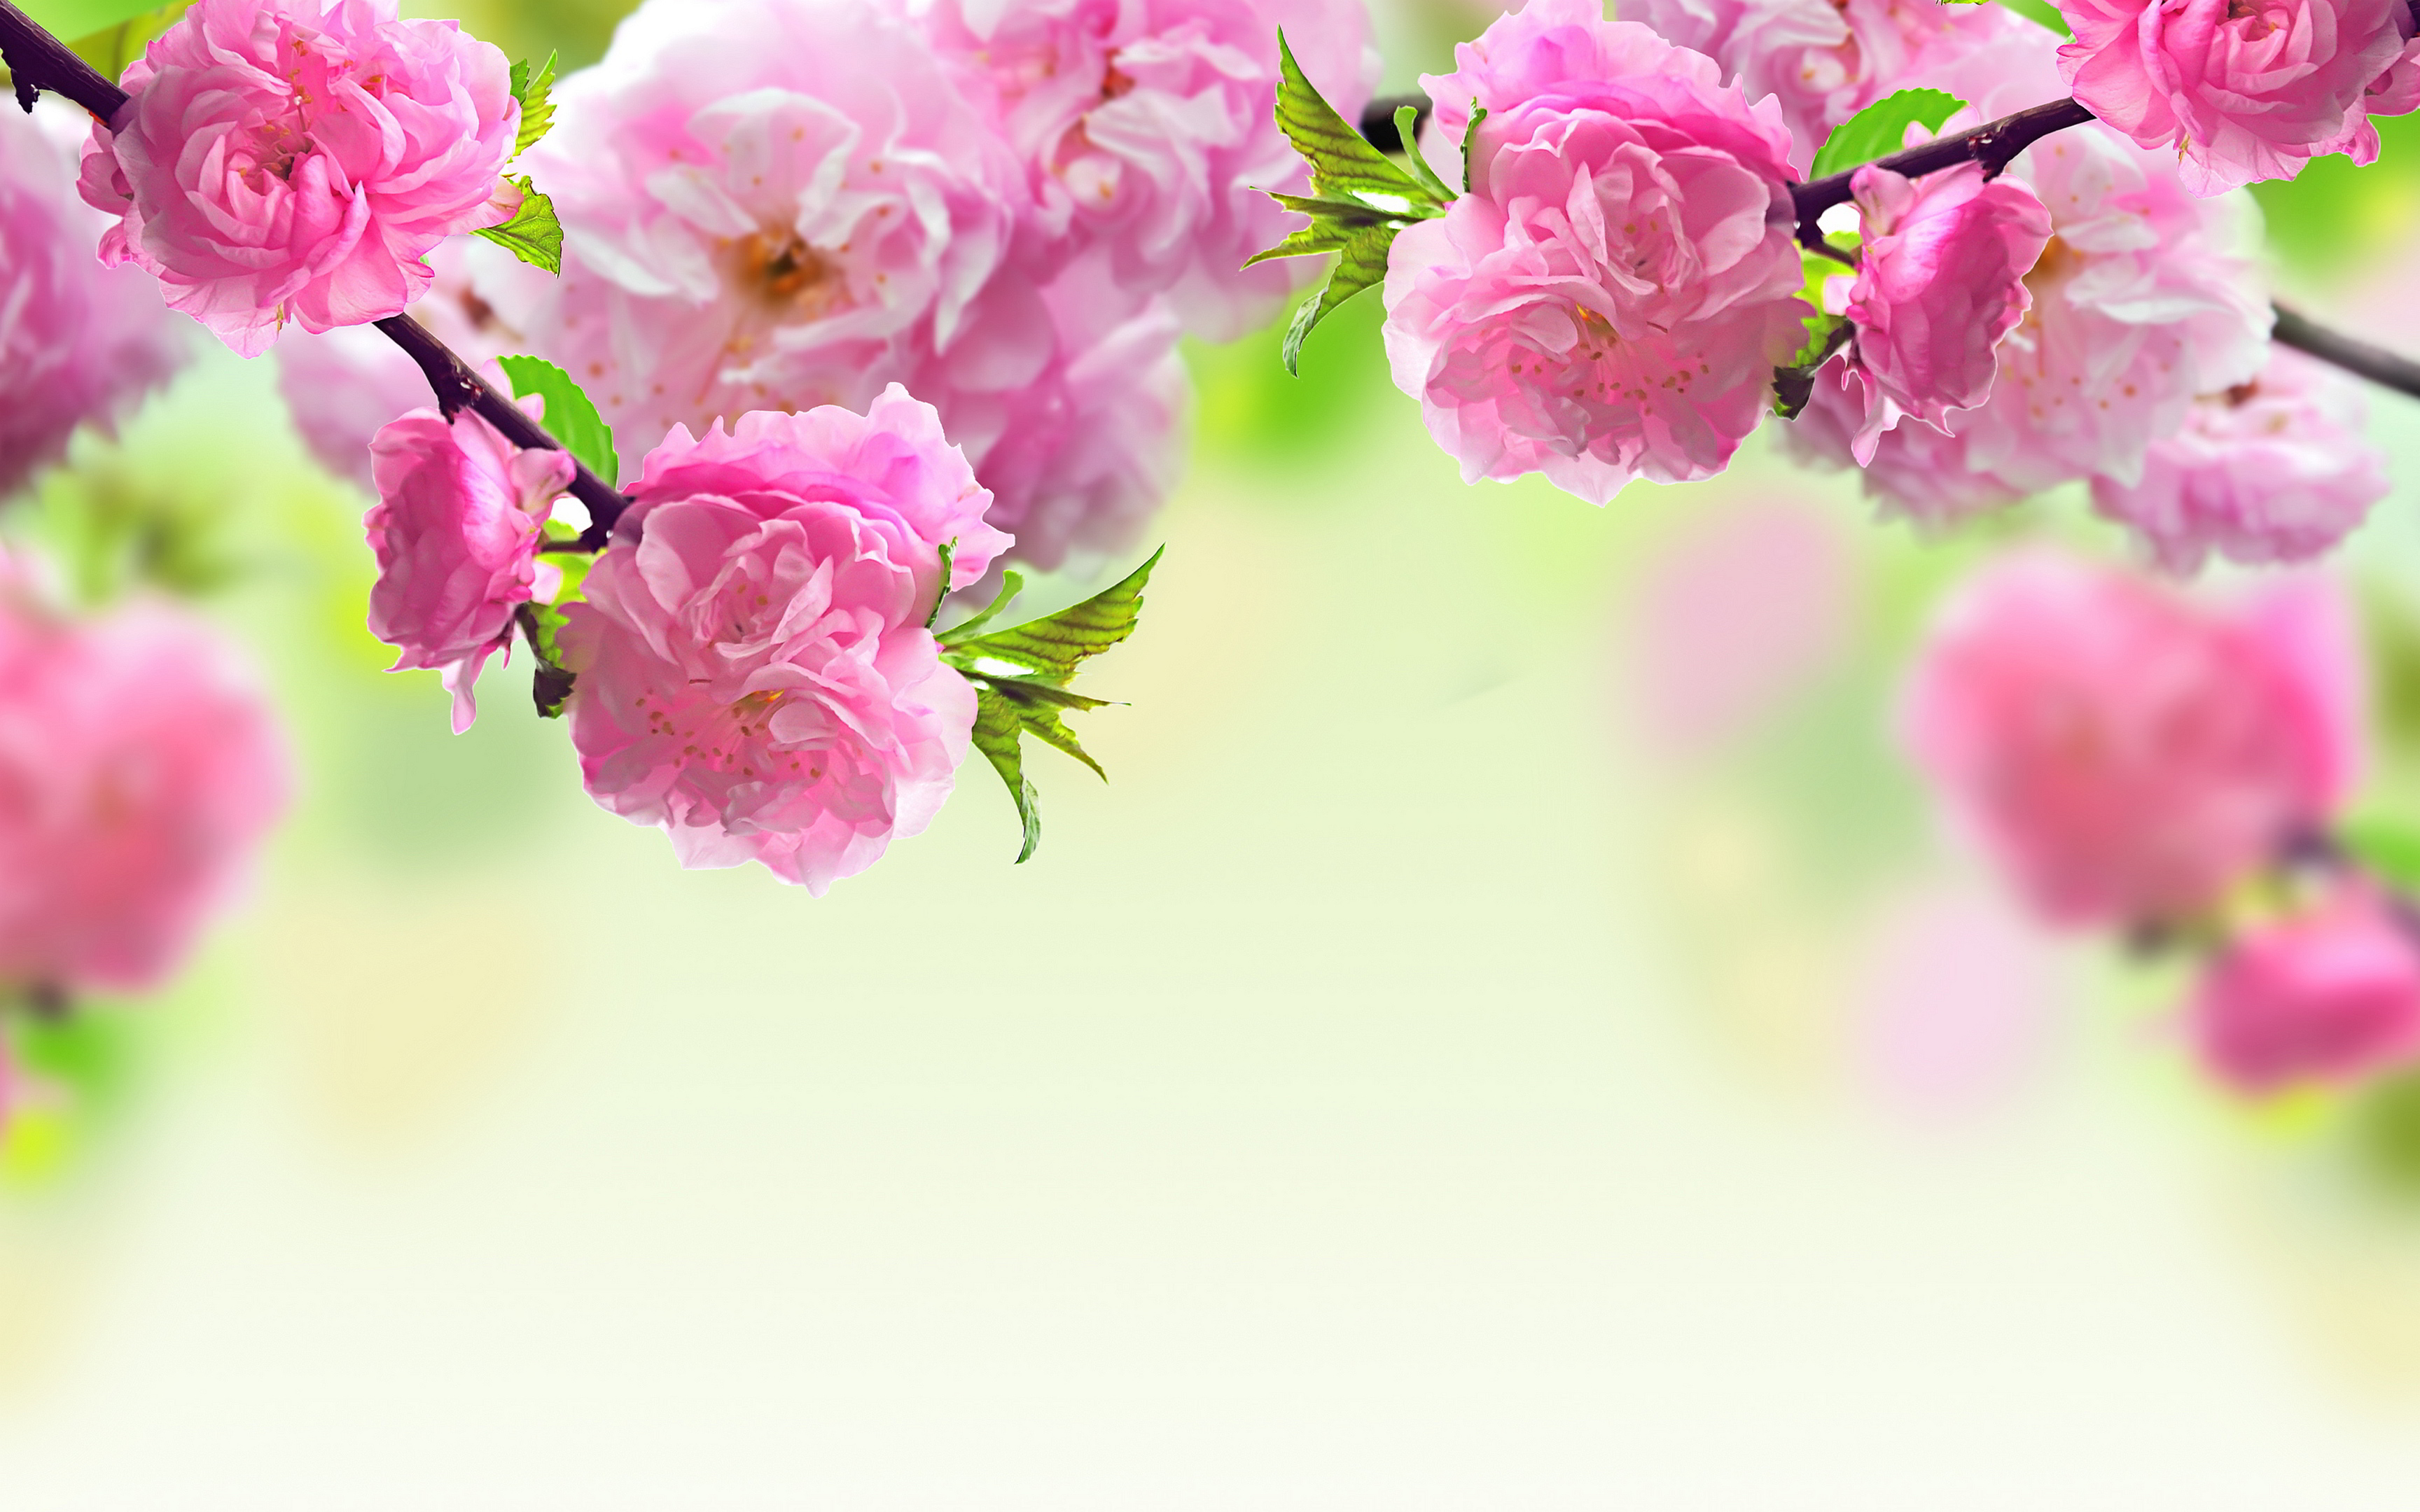 Background Flowers Wallpaper.